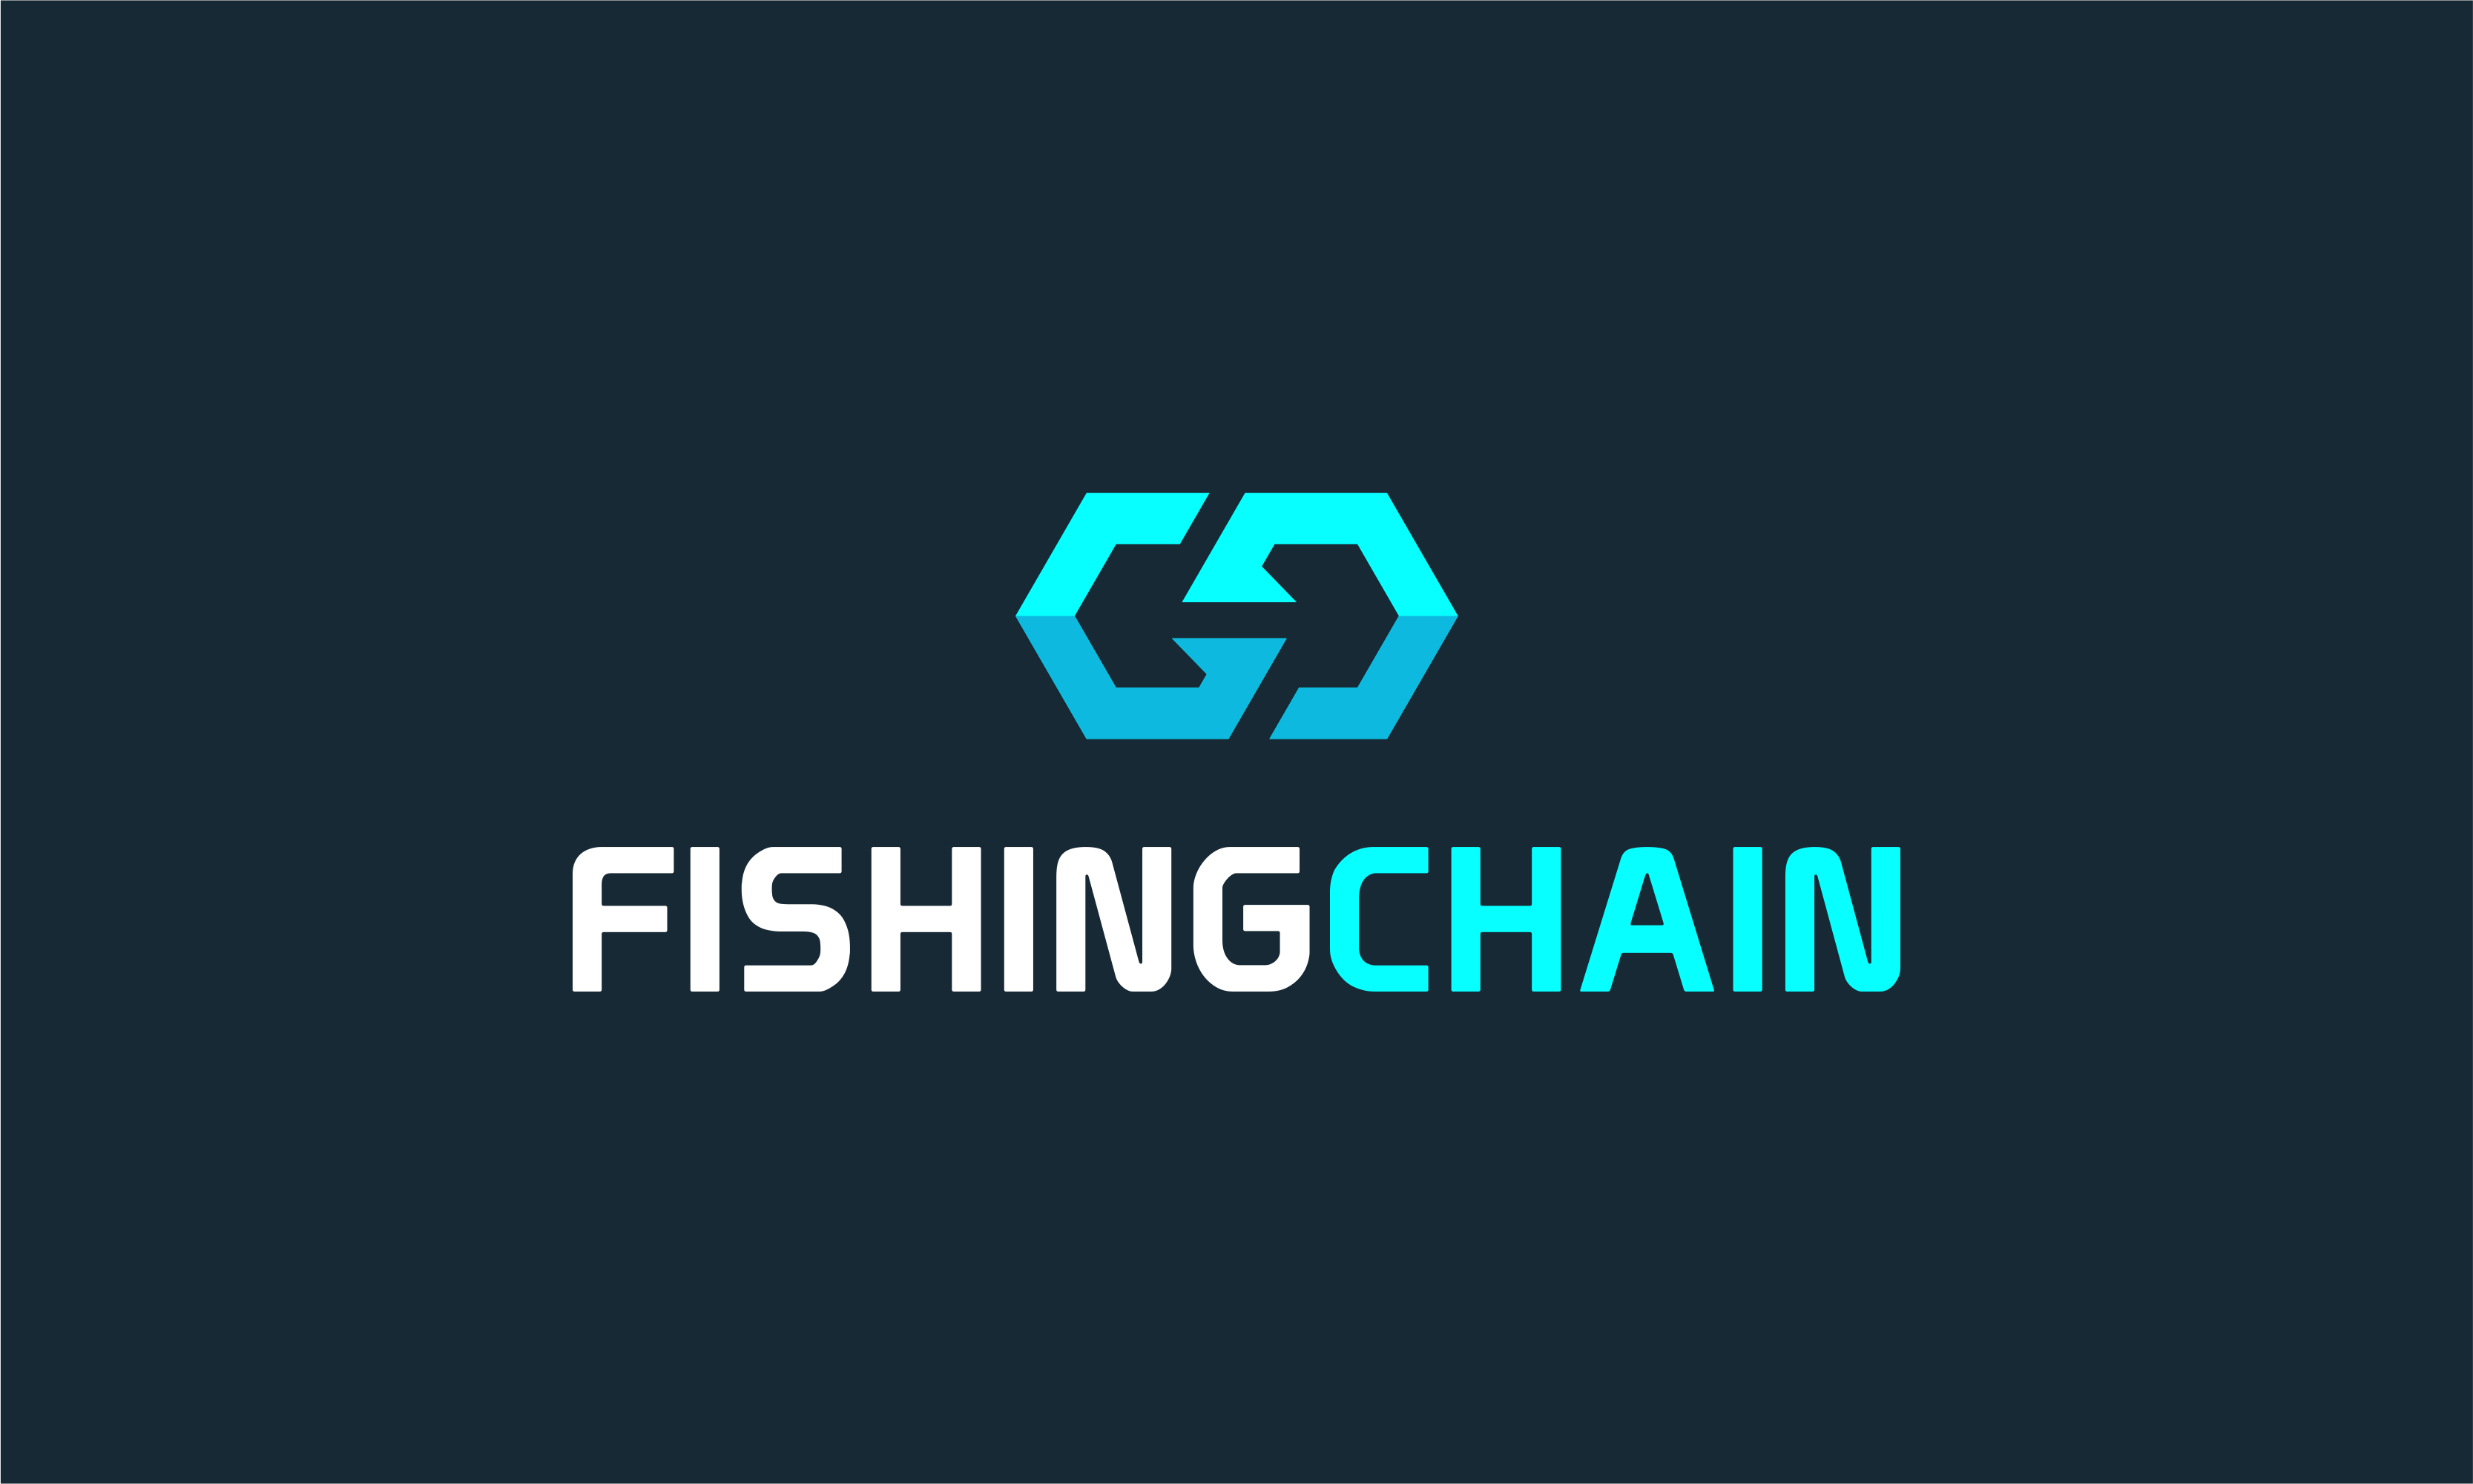 Fishingchain